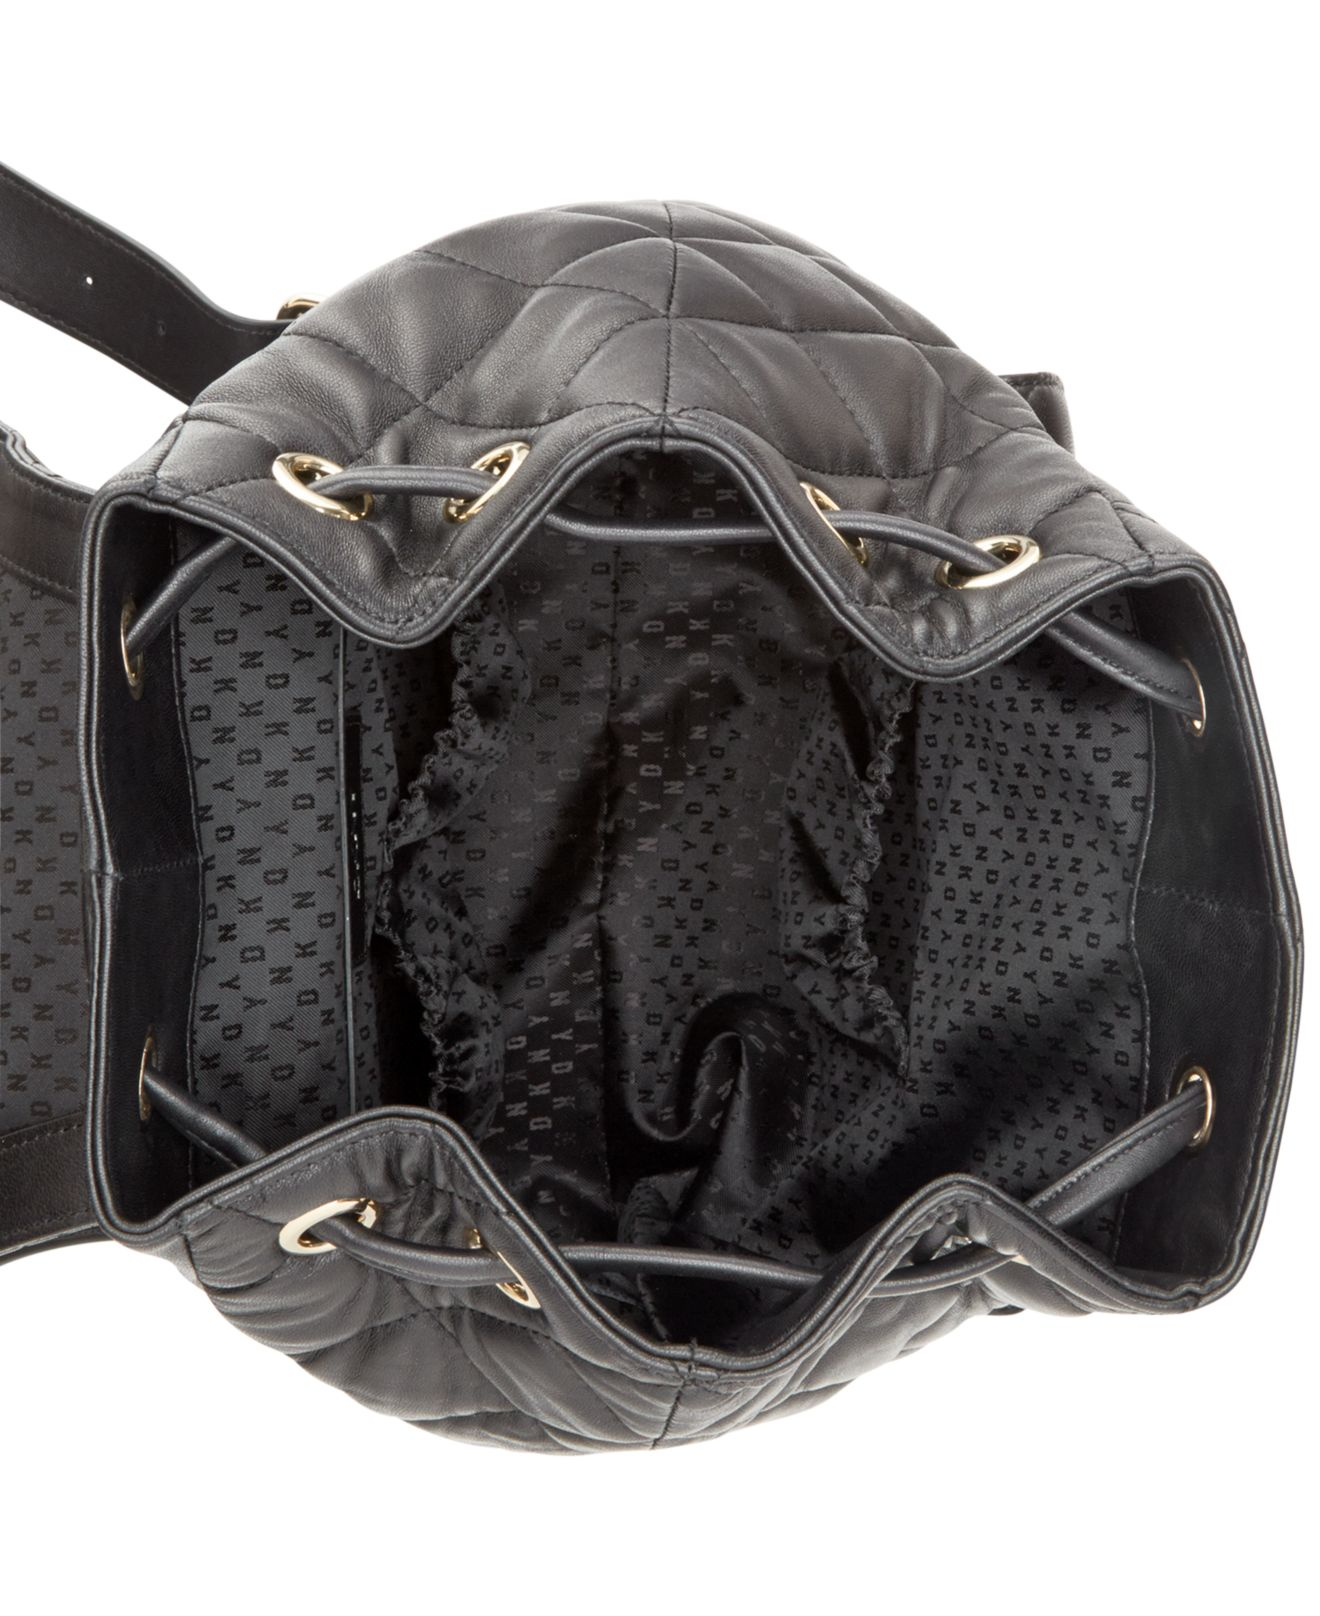 Dkny Gansevoort Quilted Nappa Leather Backpack in Black | Lyst : dkny quilted rucksack - Adamdwight.com